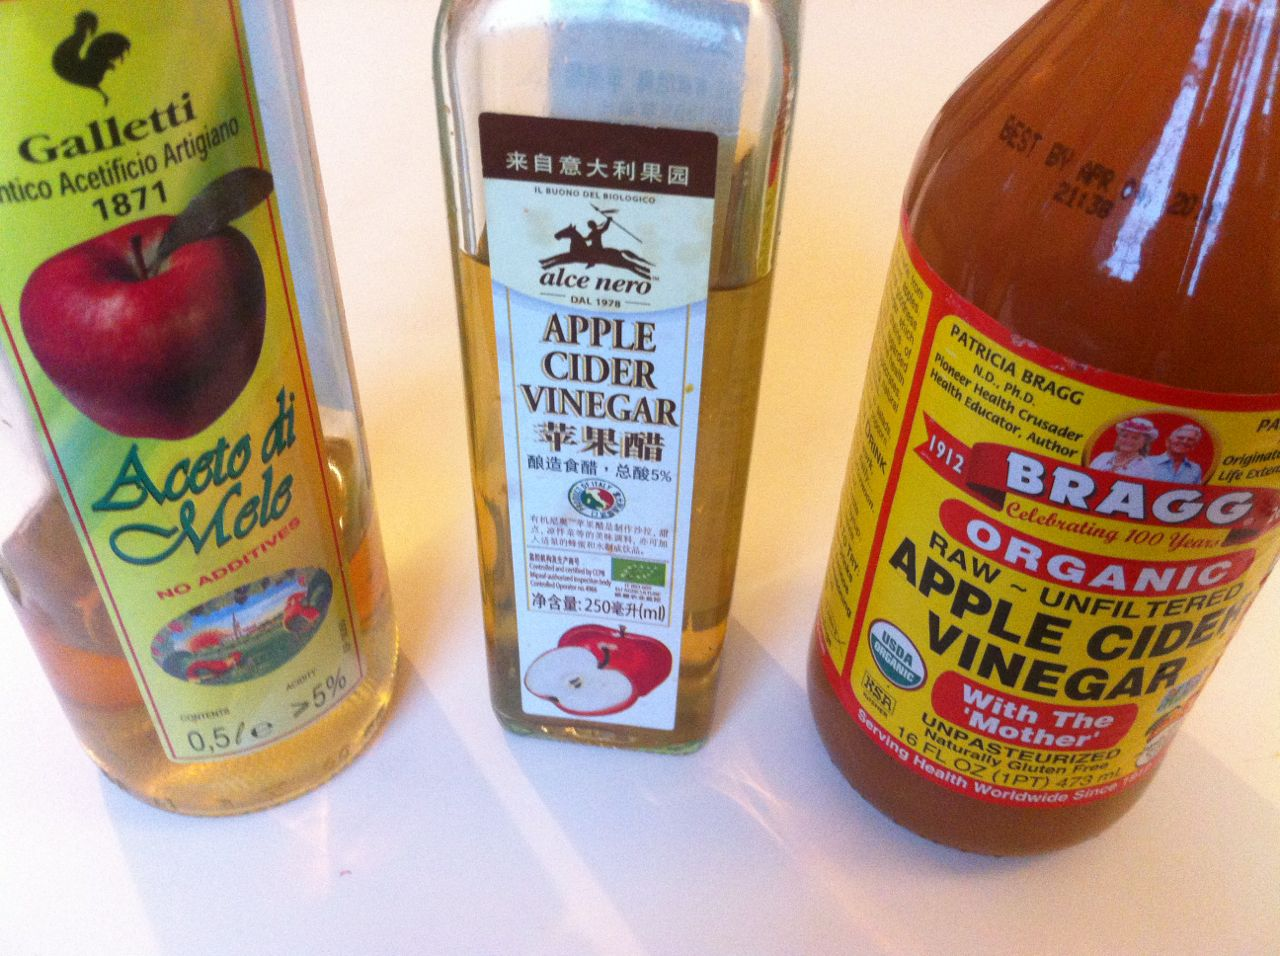 """Aceto di Mele was around RMB 20 in O'le and I use it for cleaning. The bottle in the middle was a bit more due to an """"organic"""" label but as the ACV liquid is see-through it's clearly  no  t  raw and unfiltered. I currently use this for cleaning fruits & veggies but I would use the cheaper one for this as well. The BRAGG's to the right is famous for being the """"real"""" Apple Cider Vinegar containing the """"mother"""" of vinegar and this is the one I drink."""